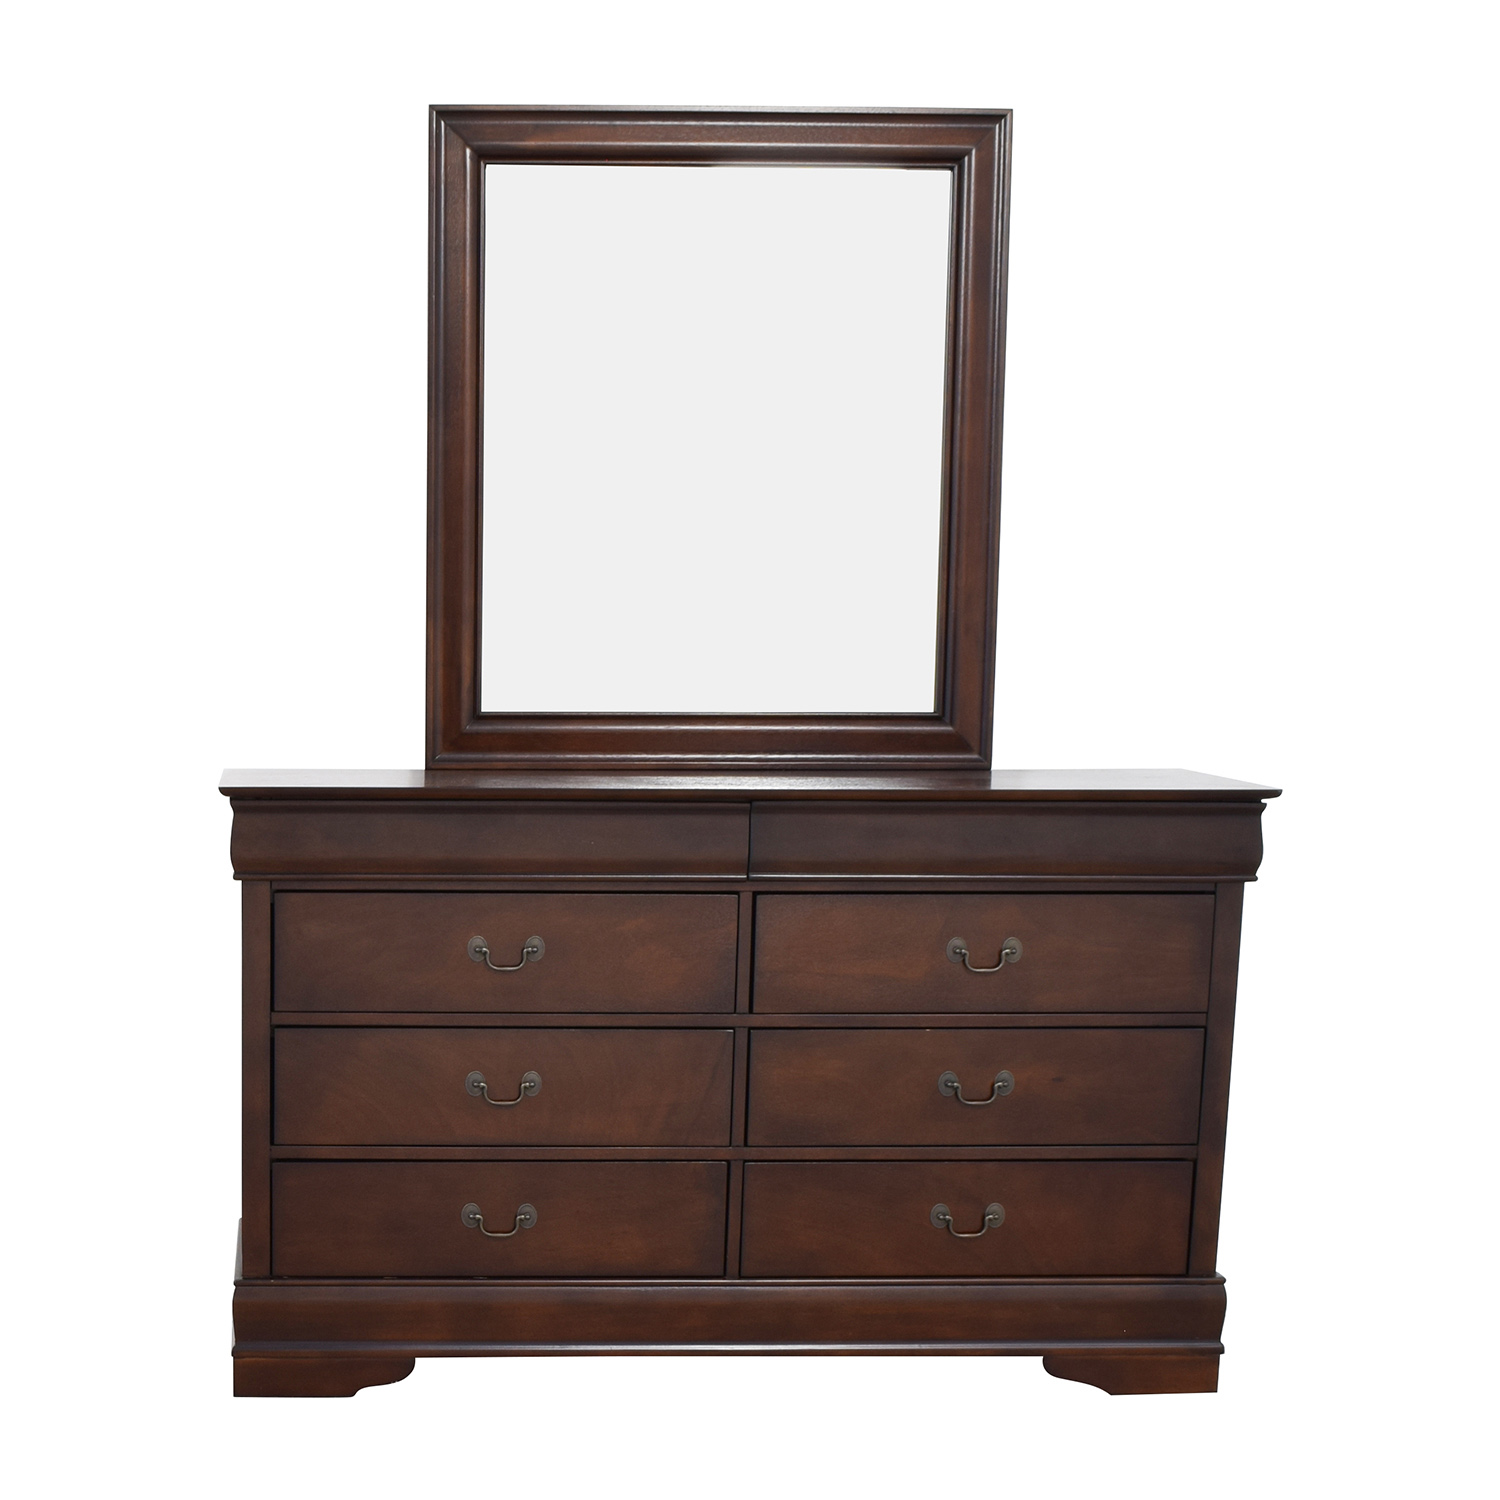 Home Meridian International Eight-Drawer Dresser with Mirror / Dressers